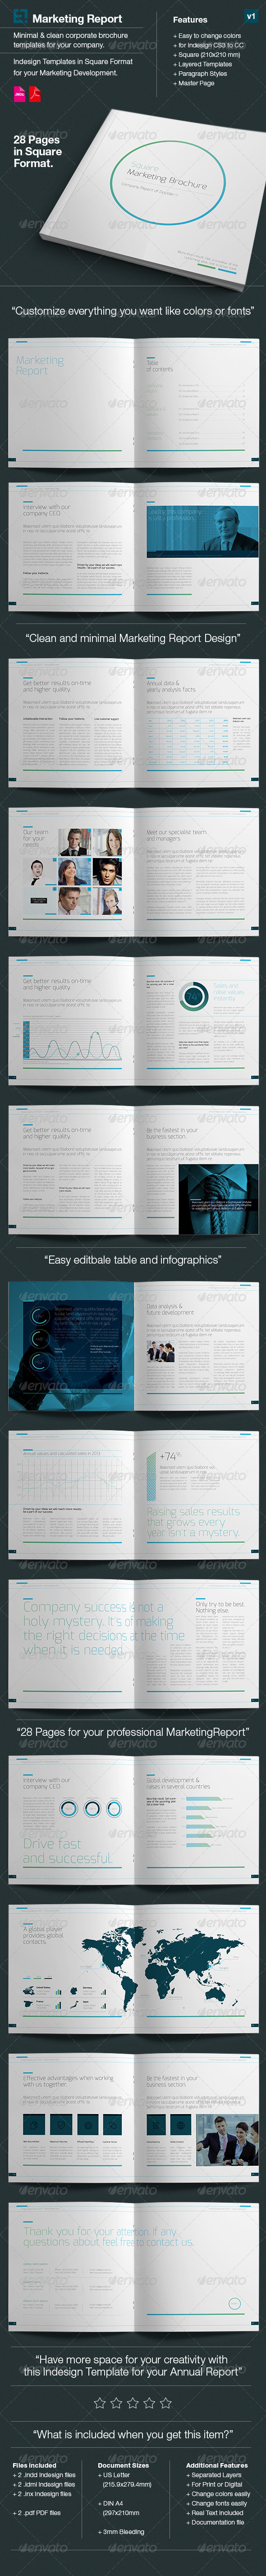 GraphicRiver Annual Report Marketing Brochure DoubleInk 6401673